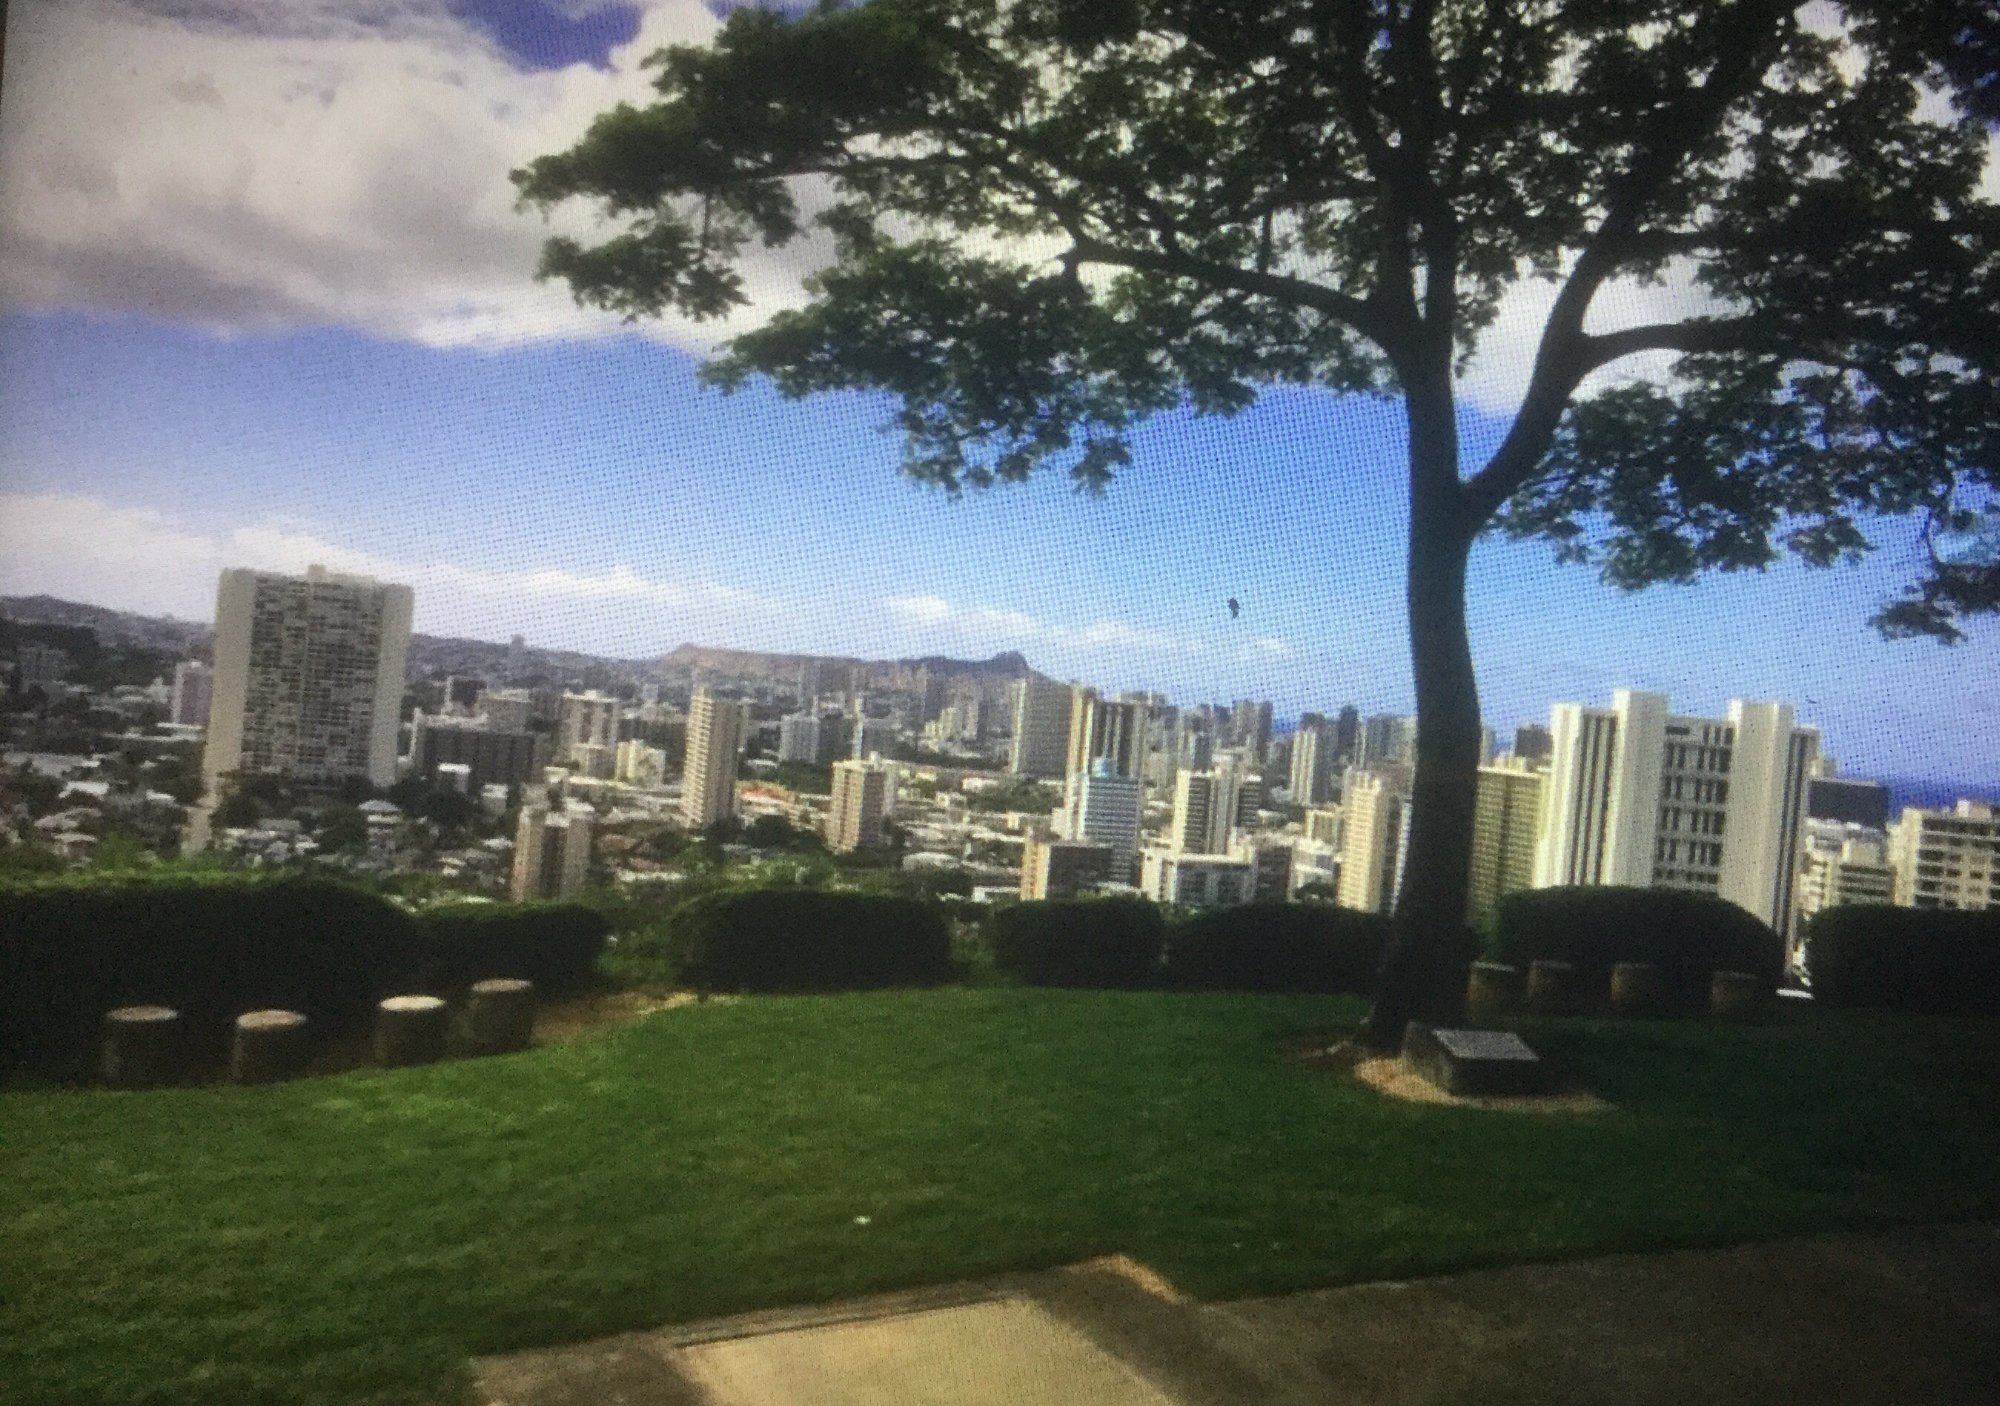 Views to see while on a bus tour to the national memorial cemetery of the pacific